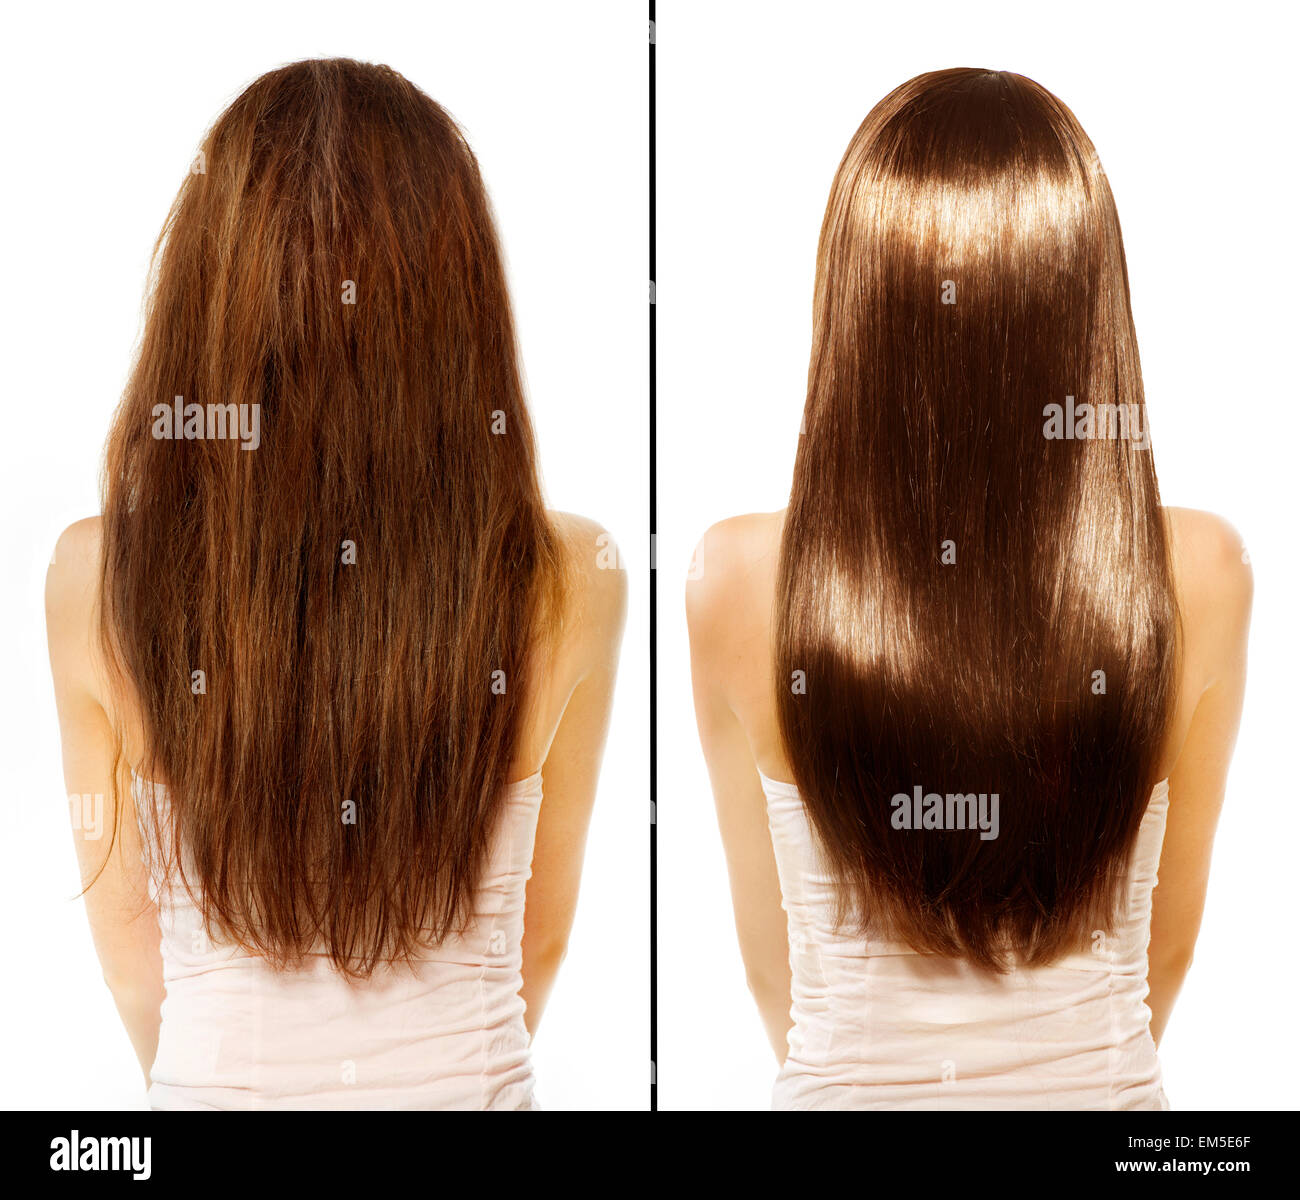 Before and After Damaged Hair Treatment Stock Photo, Royalty Free ...